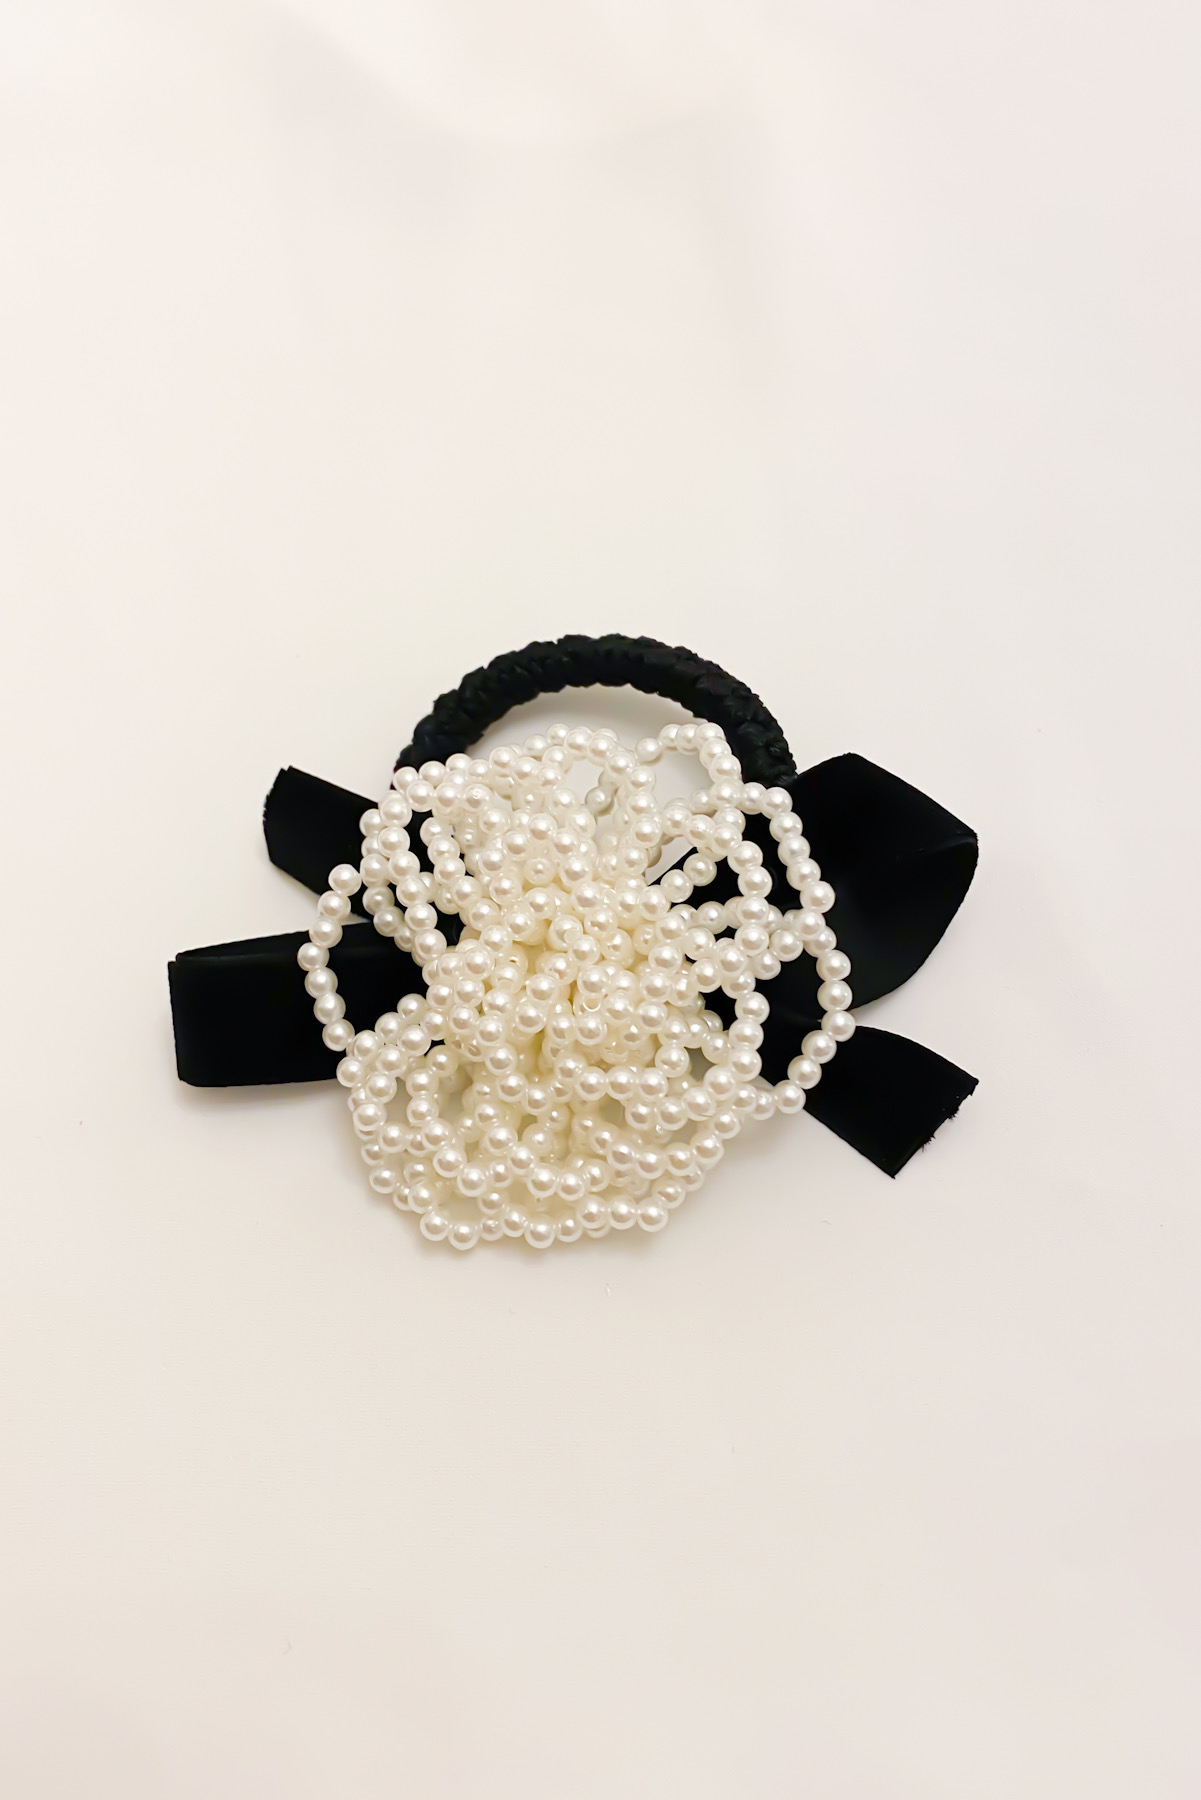 SKYE San Francisco Shop SF Chic Modern Elegant Classy Women Jewelry French Parisian Minimalist Harper Rose Pearl Hair Tie